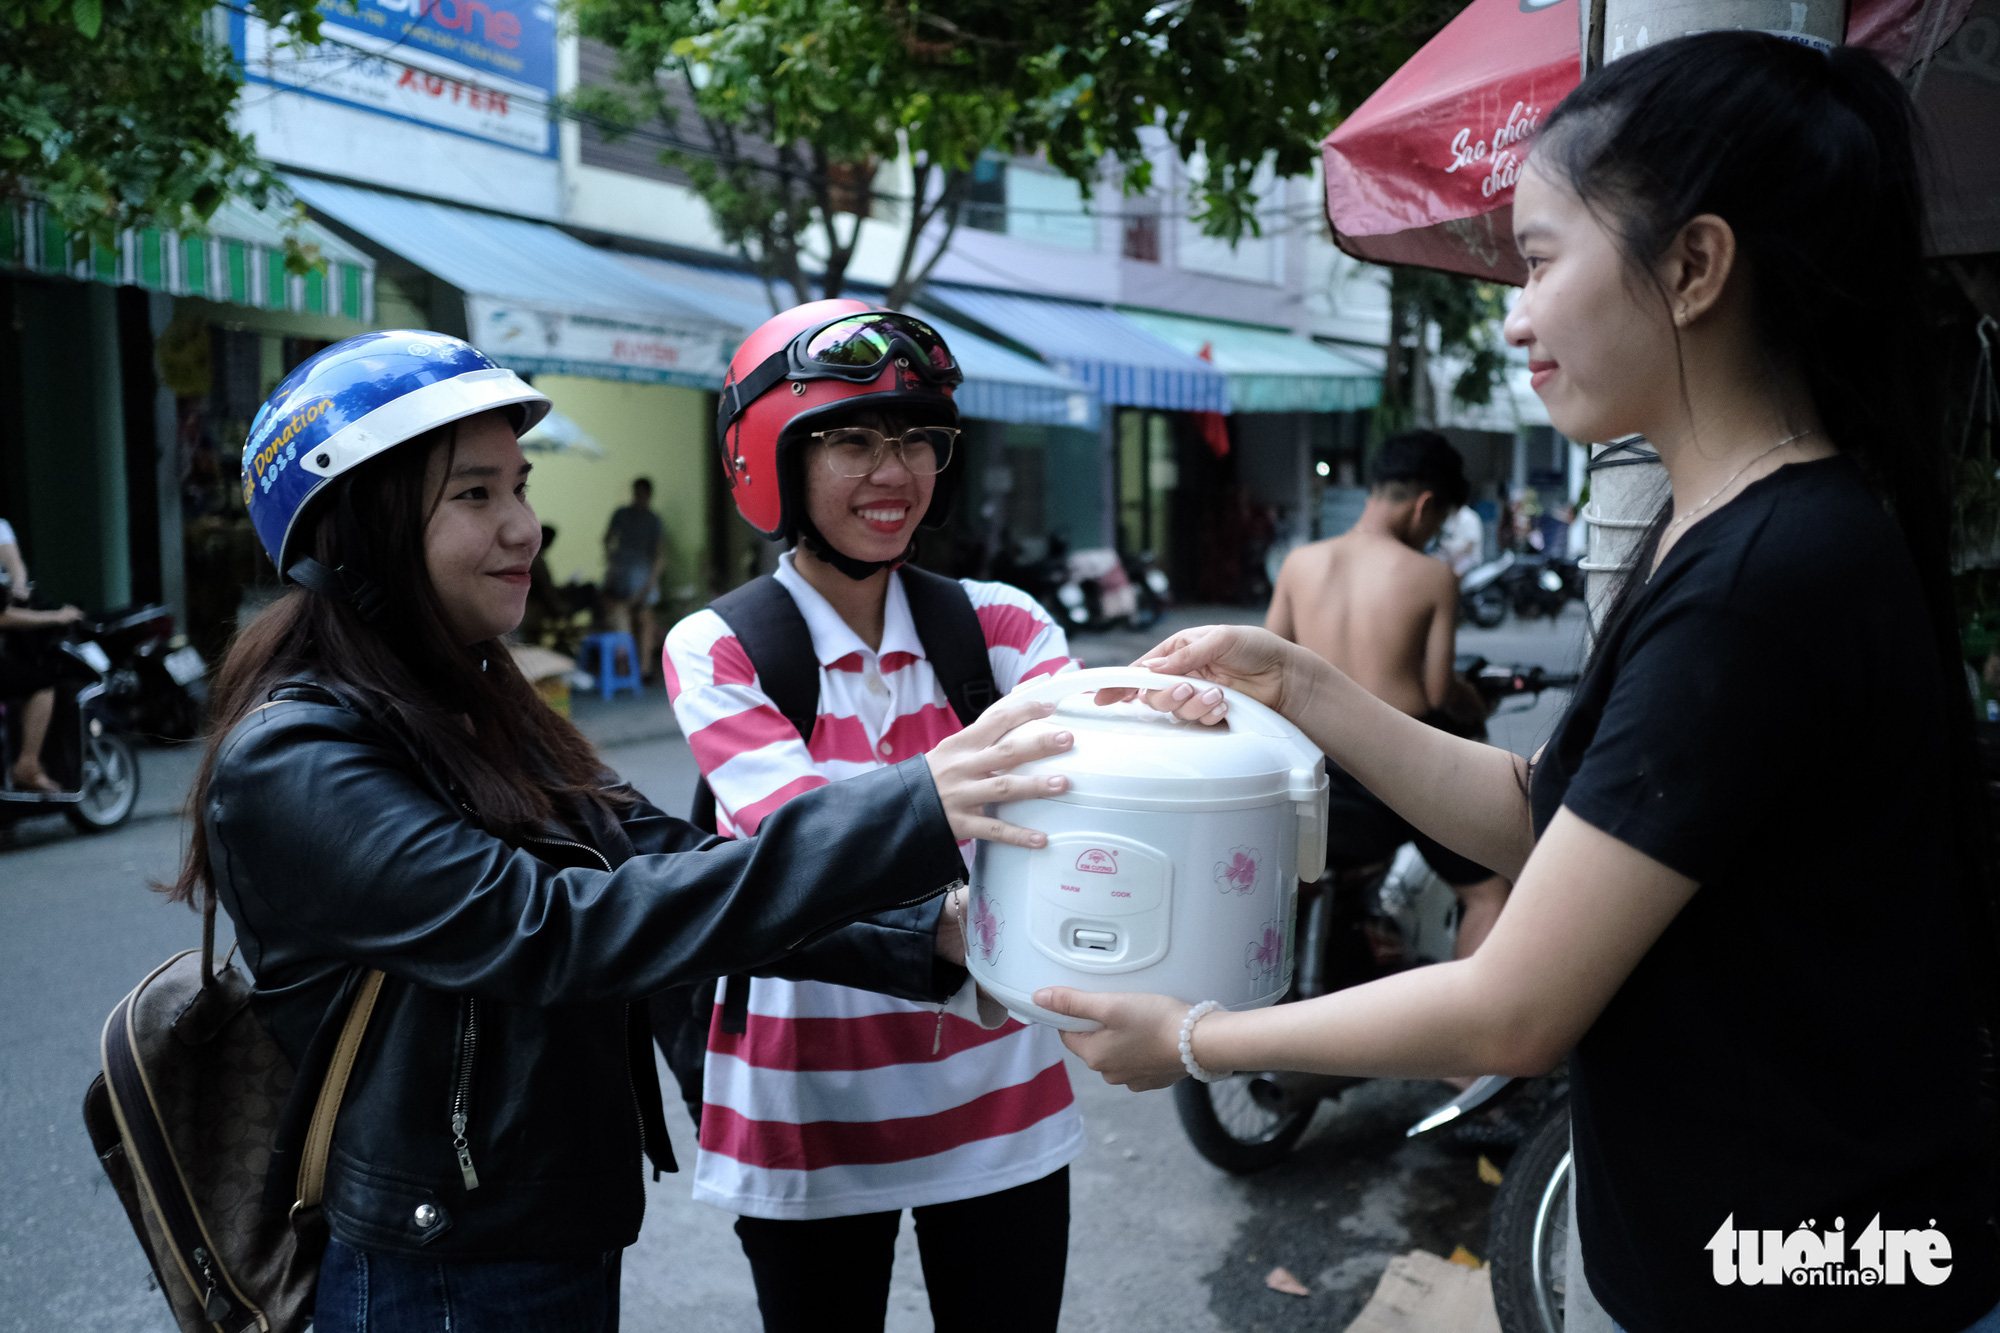 Trash to treasure: Da Nang's 'Give and Take' app helps used goods find new owners